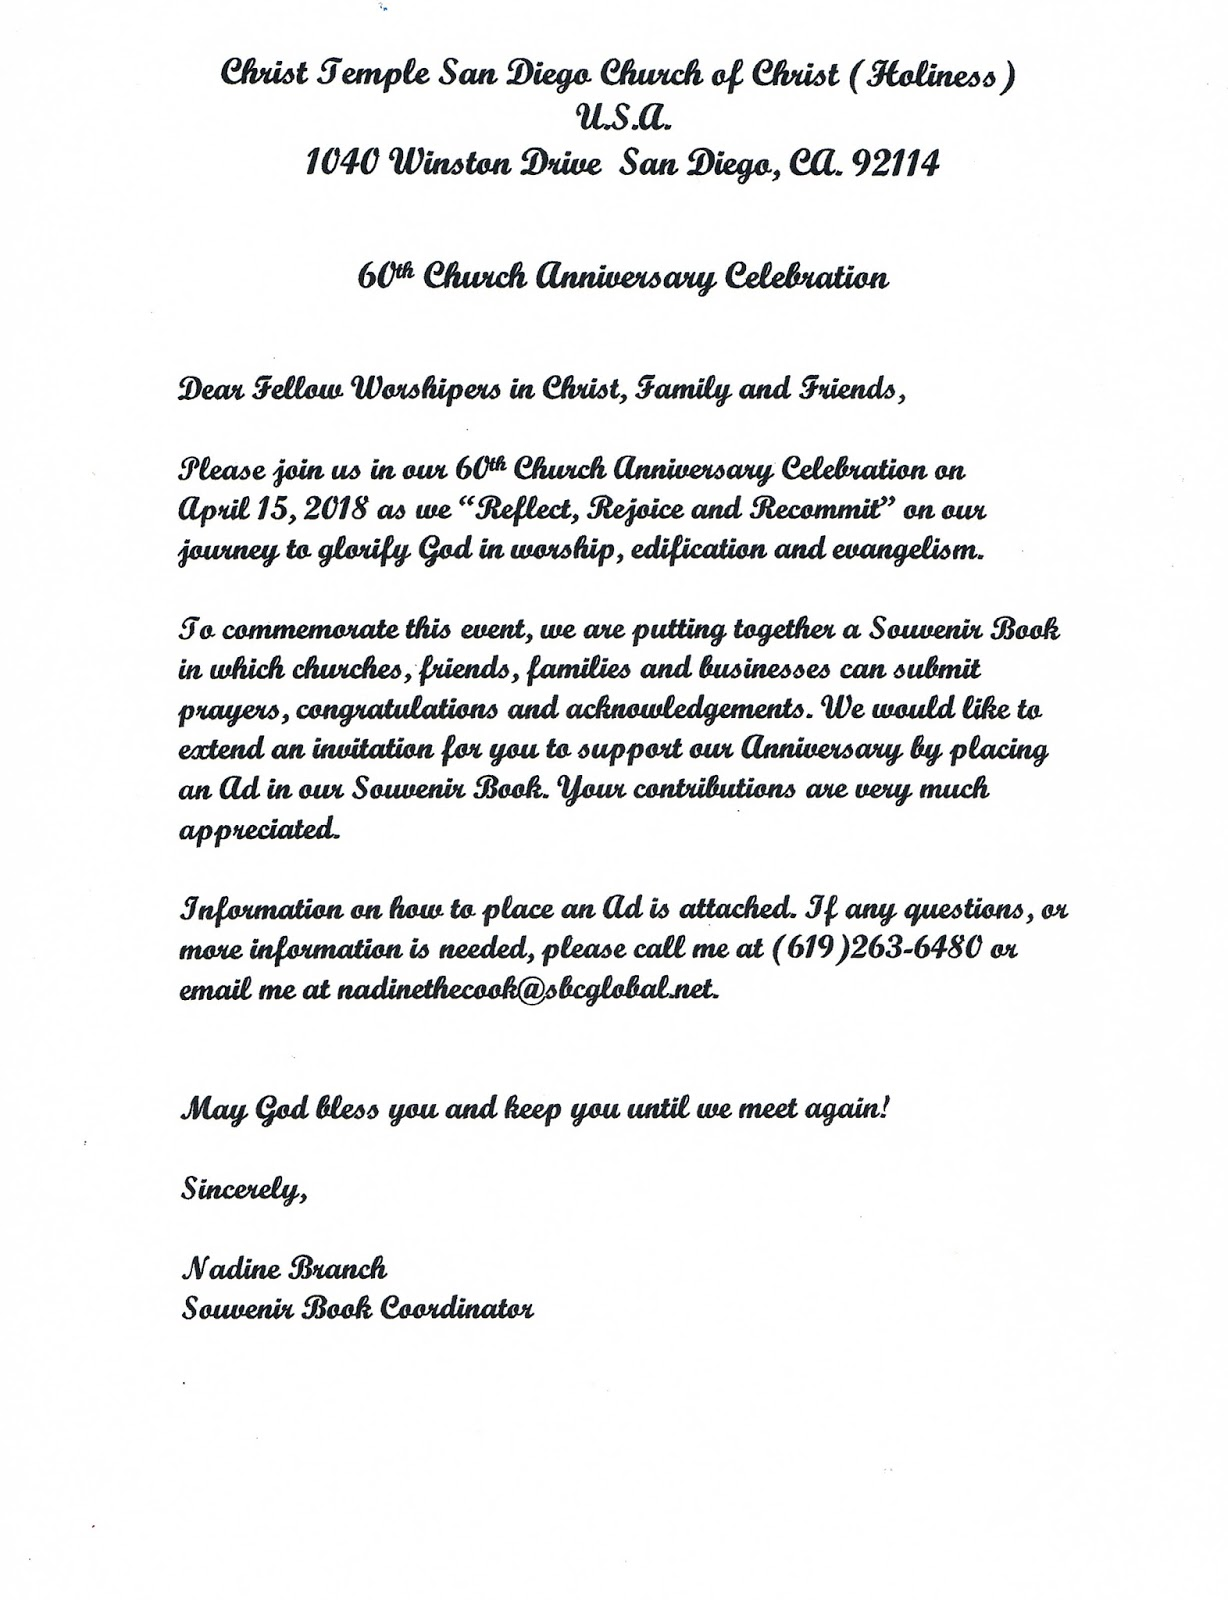 christ temple church of christ holiness usa cover letter for